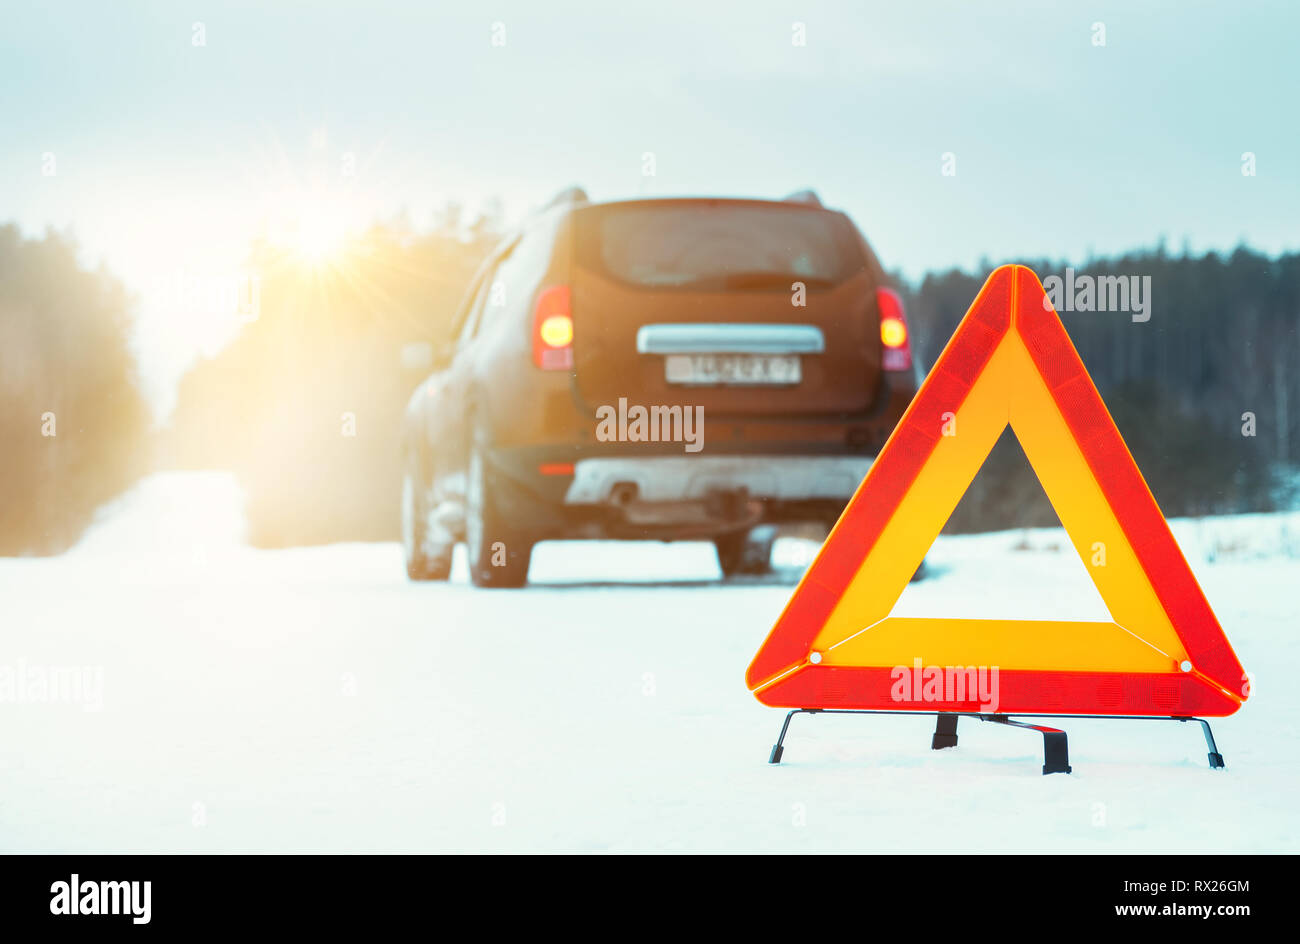 Emergency stop sign and car on winter road at sunset. - Stock Image